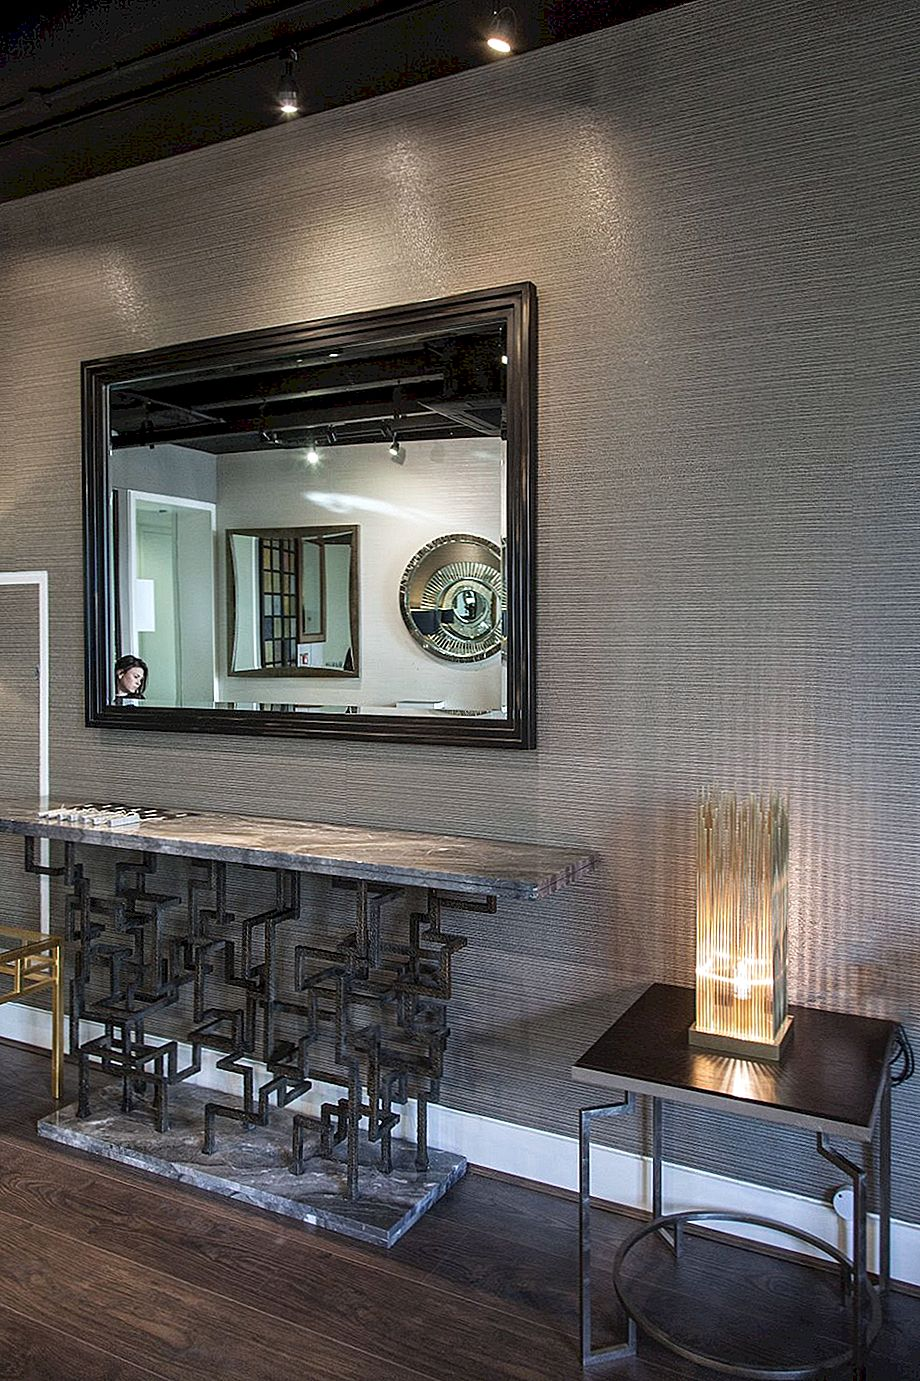 The Entryway Mirror - Star Of A Welcoming Home